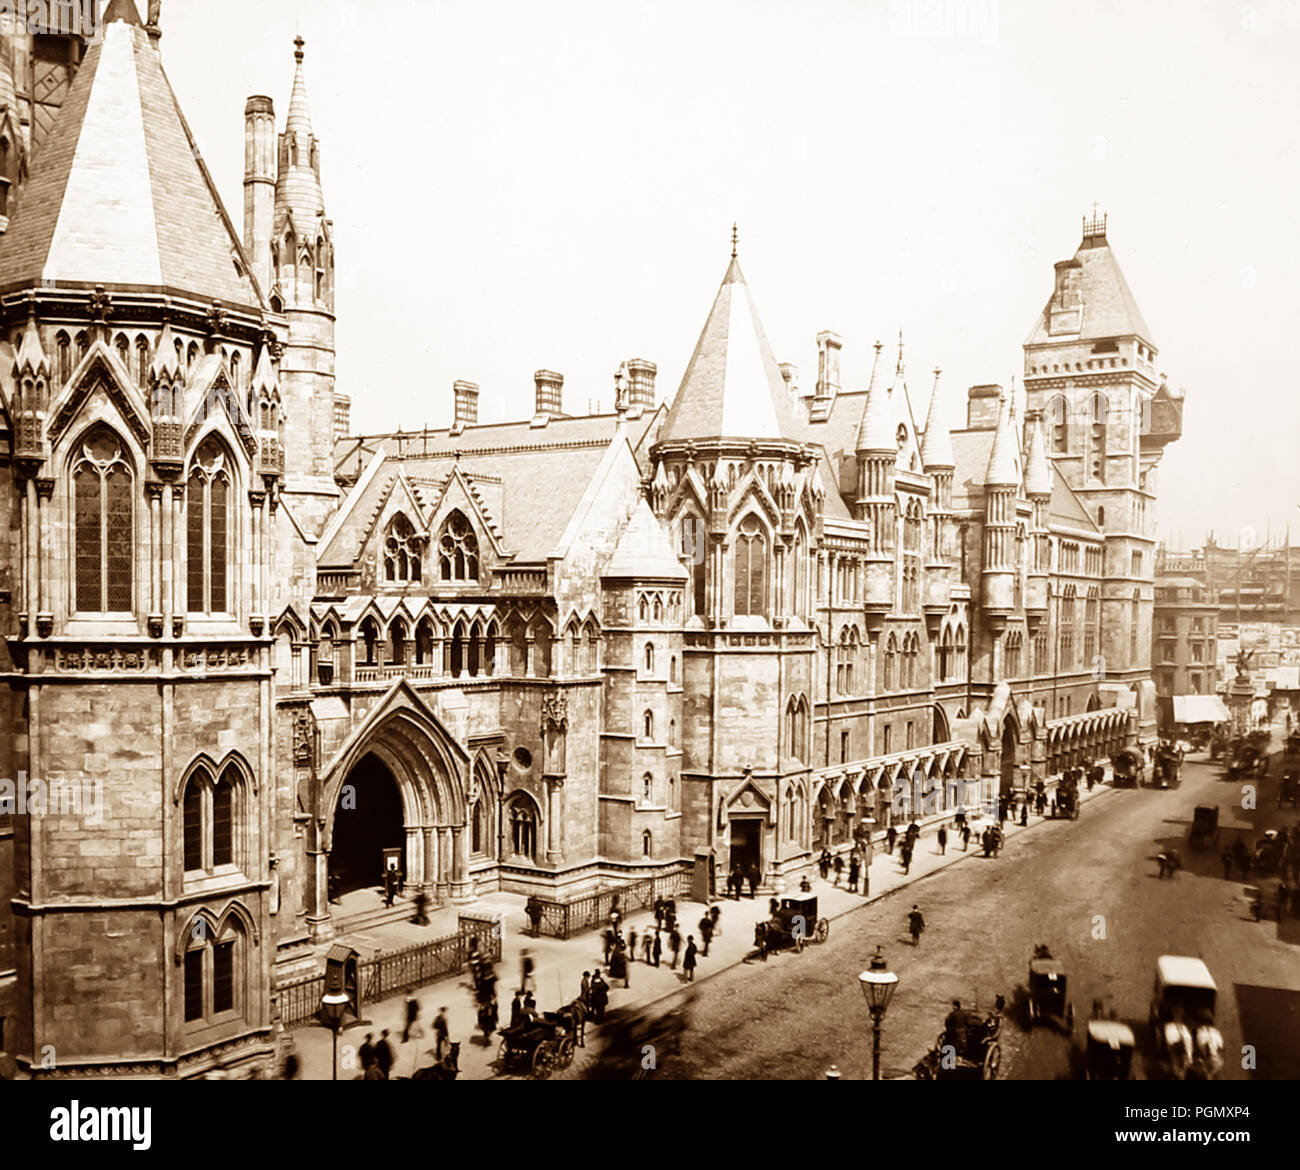 Royal Courts of Justice, London, Victorian period - Stock Image